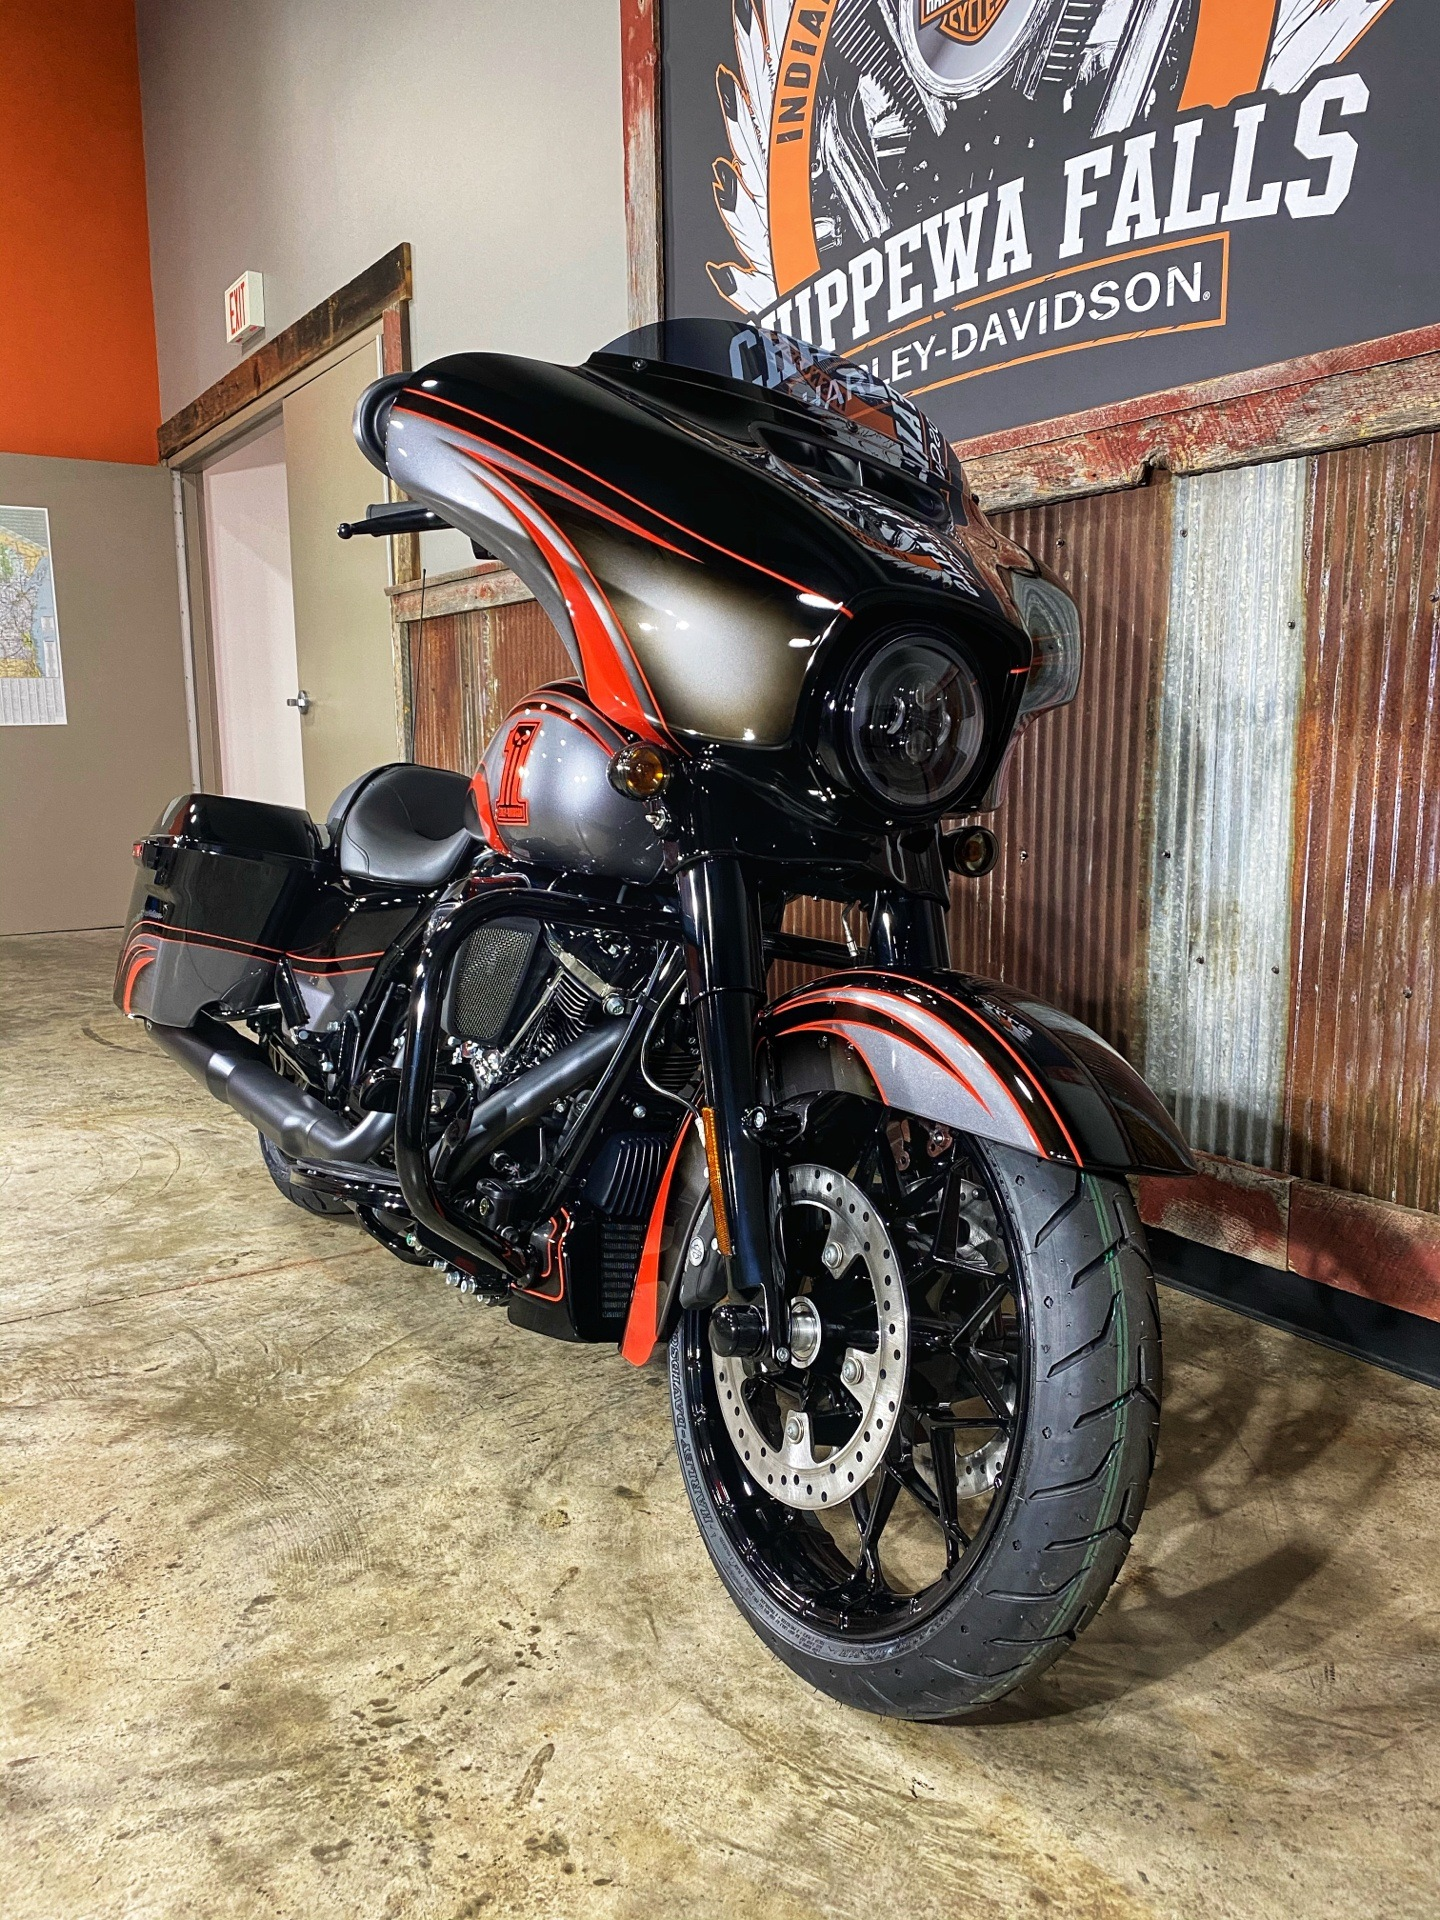 2020 Harley-Davidson Street Glide® Special in Chippewa Falls, Wisconsin - Photo 5